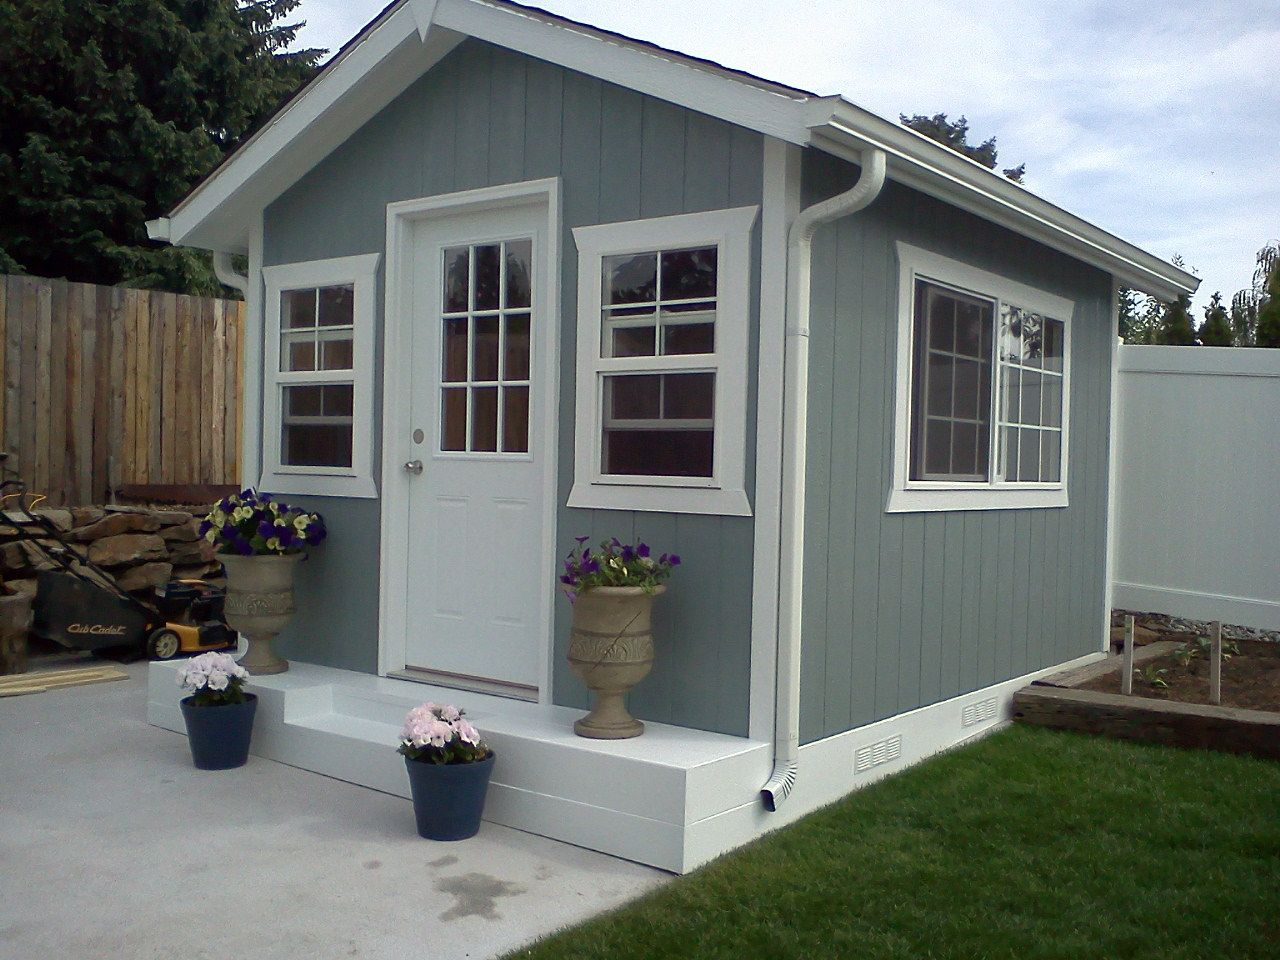 Custom Built, Garden Shed, Mother In Law Home, Playhouse